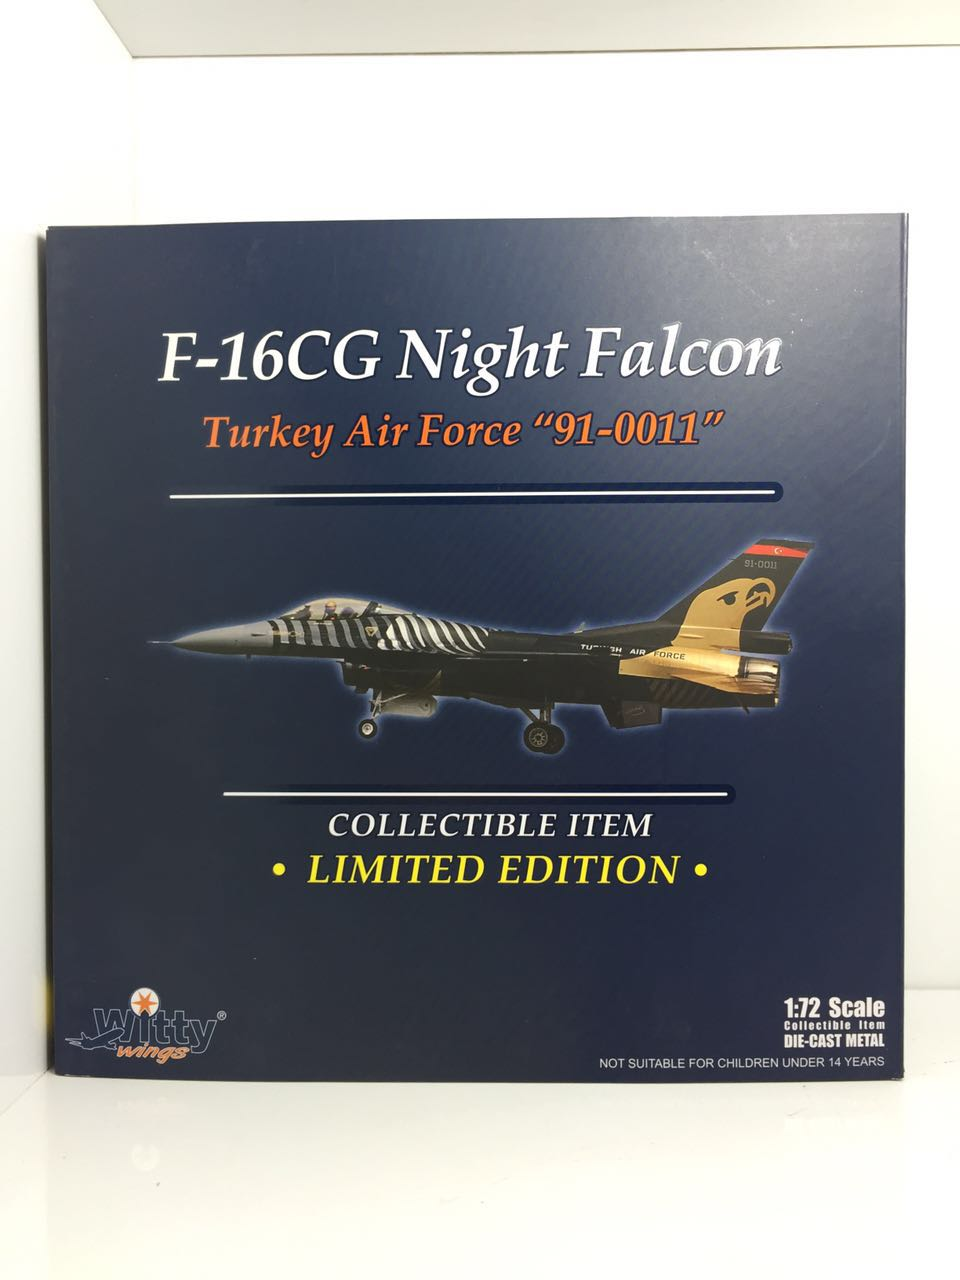 Witty 010-031 F-16CG Fighting Falcon Turkey air force  91-0011 1:72 Finished Model